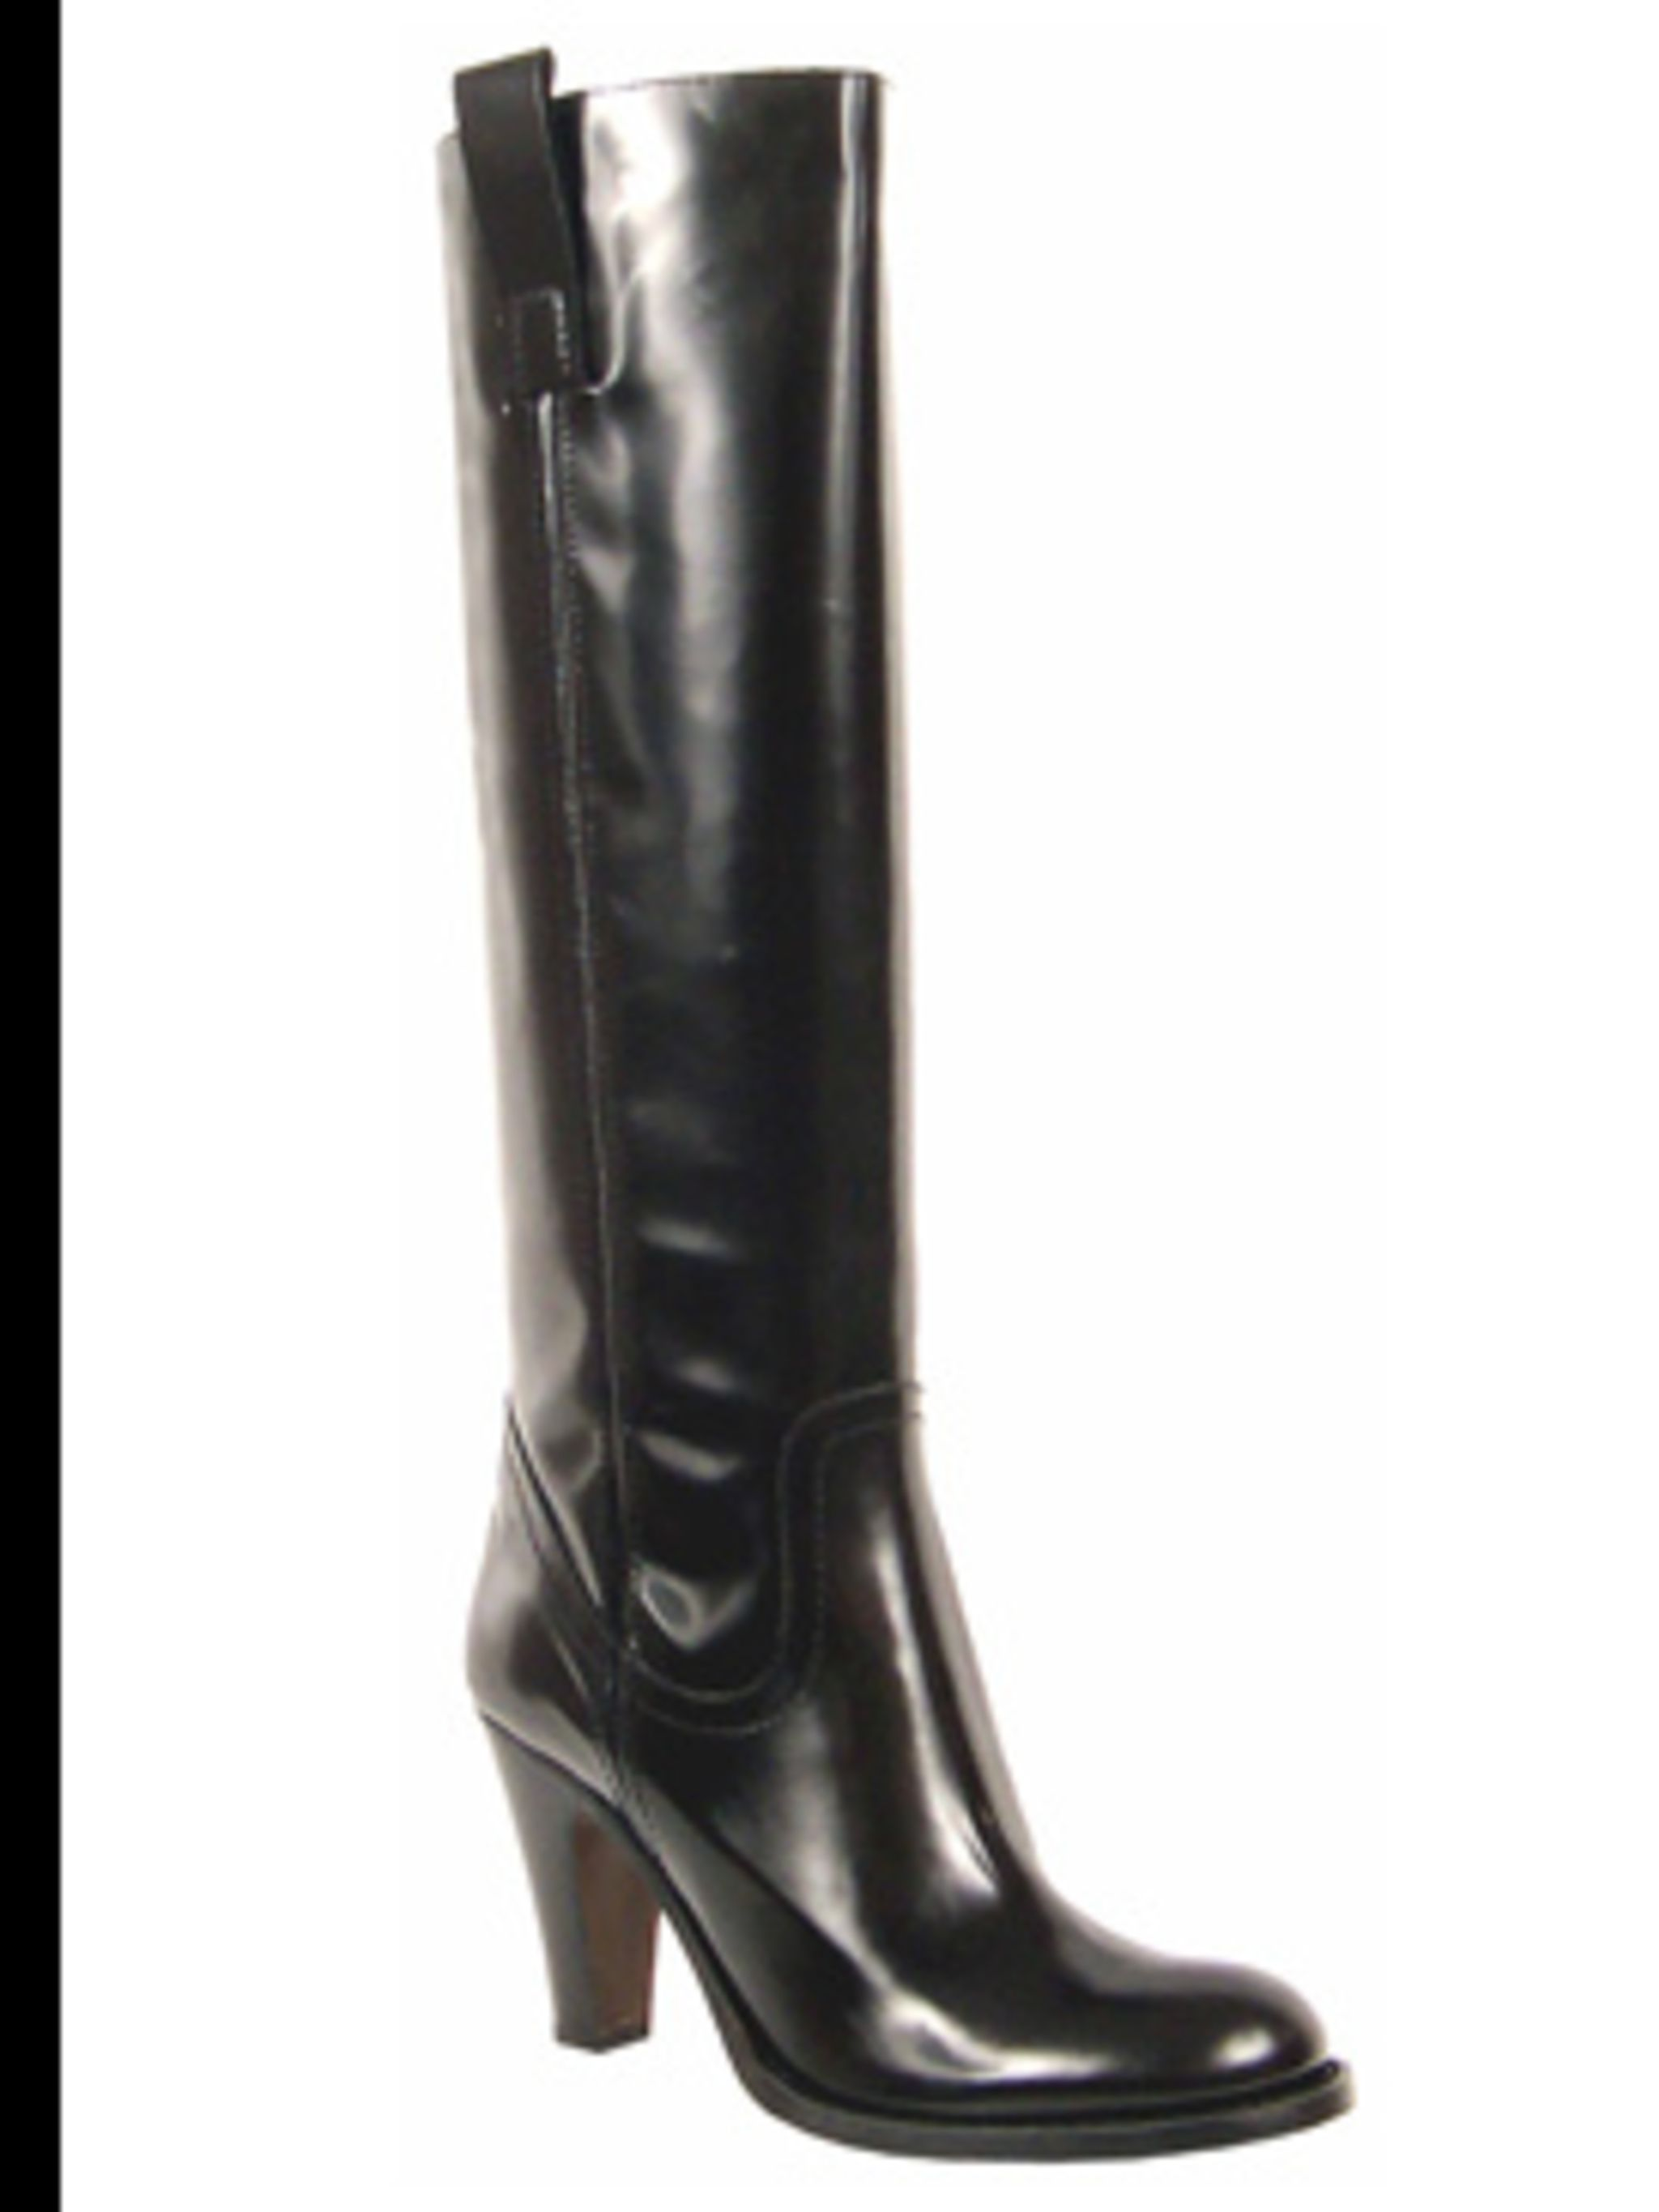 <p>'Fry-Baby' boot £215 by Russell and Bromley, for stockists call (020) 7629 6903</p>